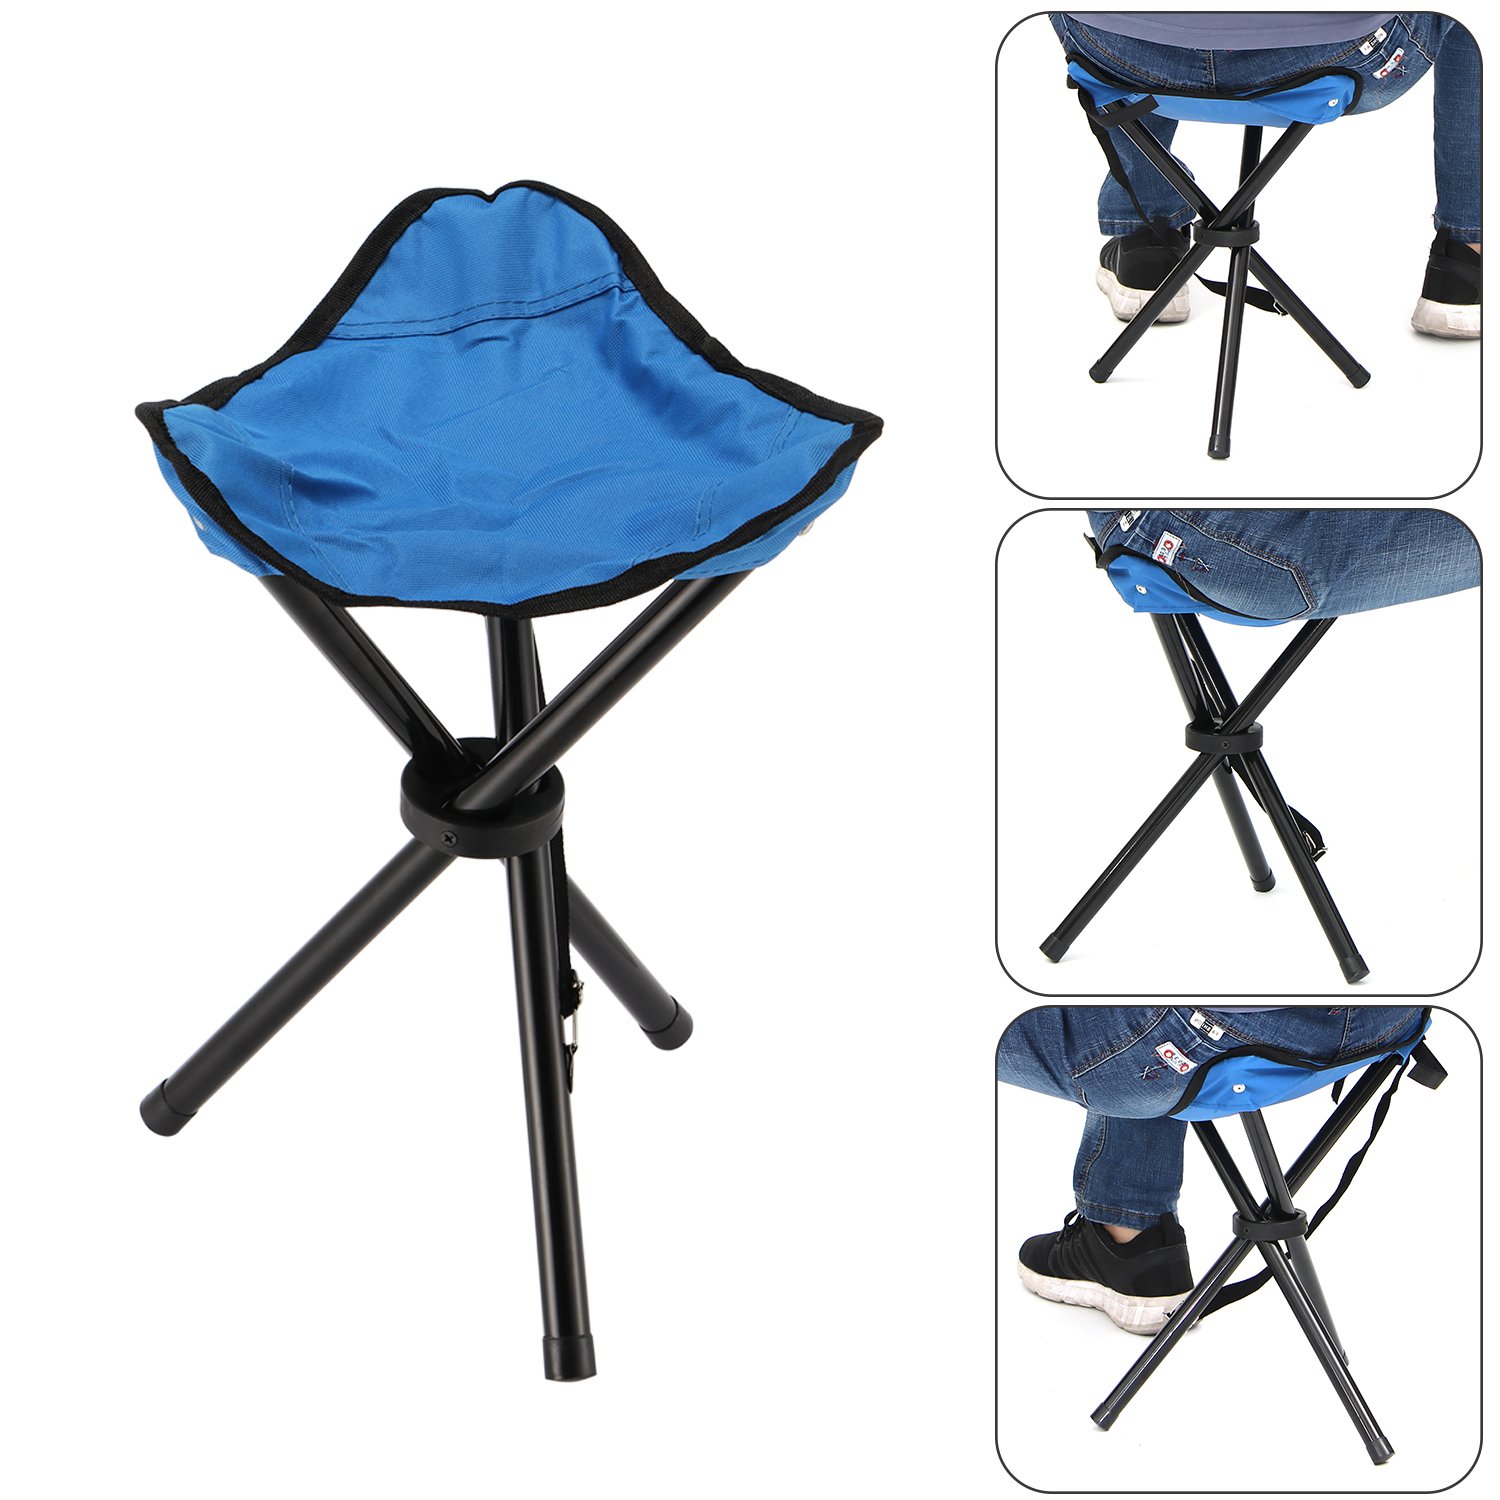 Portable Stool Us 9 2 25 Off New Portable Tripod Stool Folding Chair With Carrying Case Outdoor Camping Hunting Picnic Lightweight 3 Legs Tripod Stool Seat In